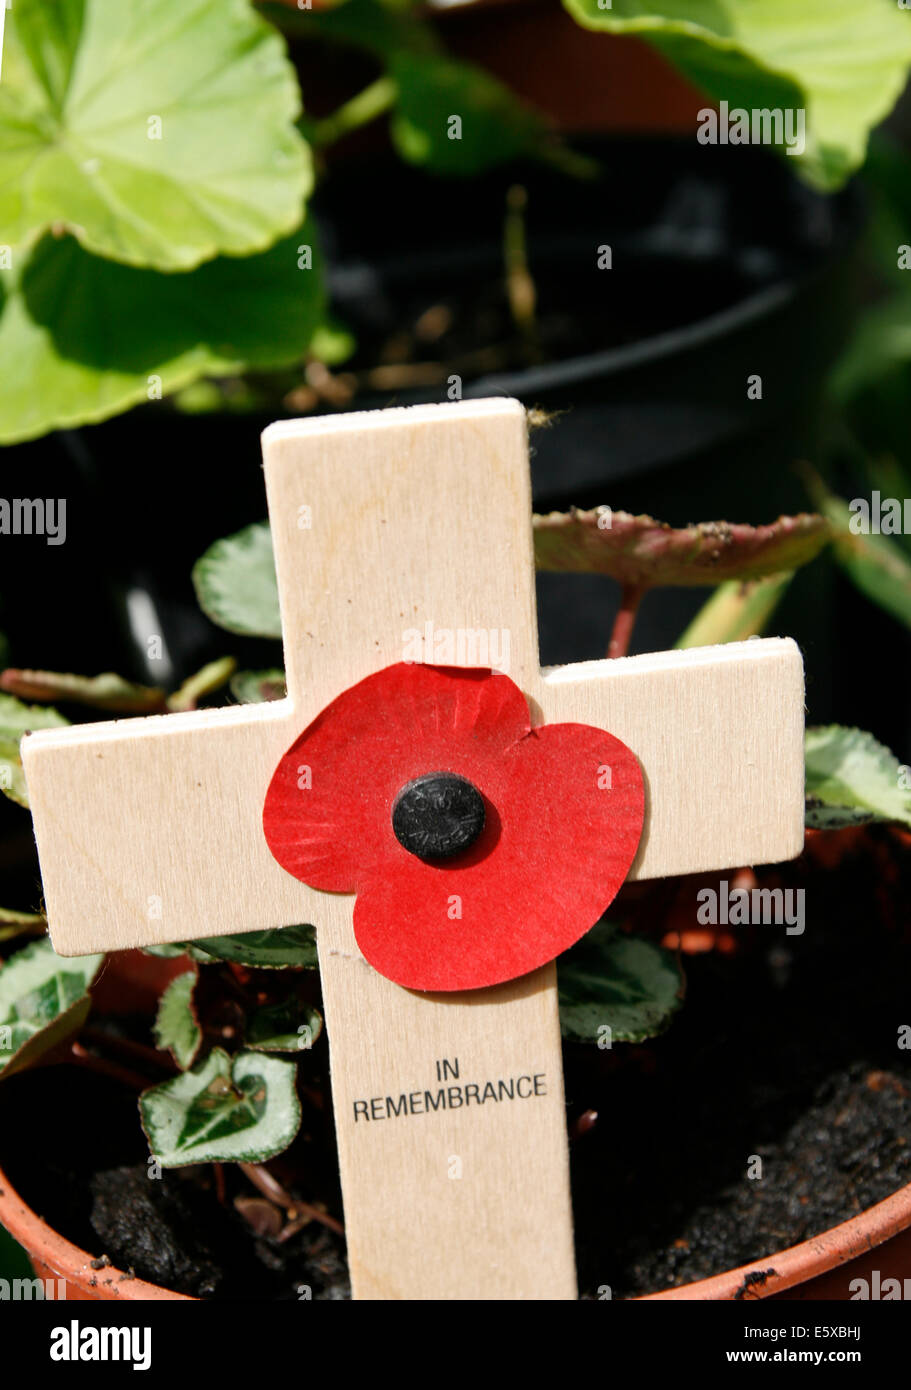 Remembrance Day Poppy Worcester Worcestershire England UK - Stock Image